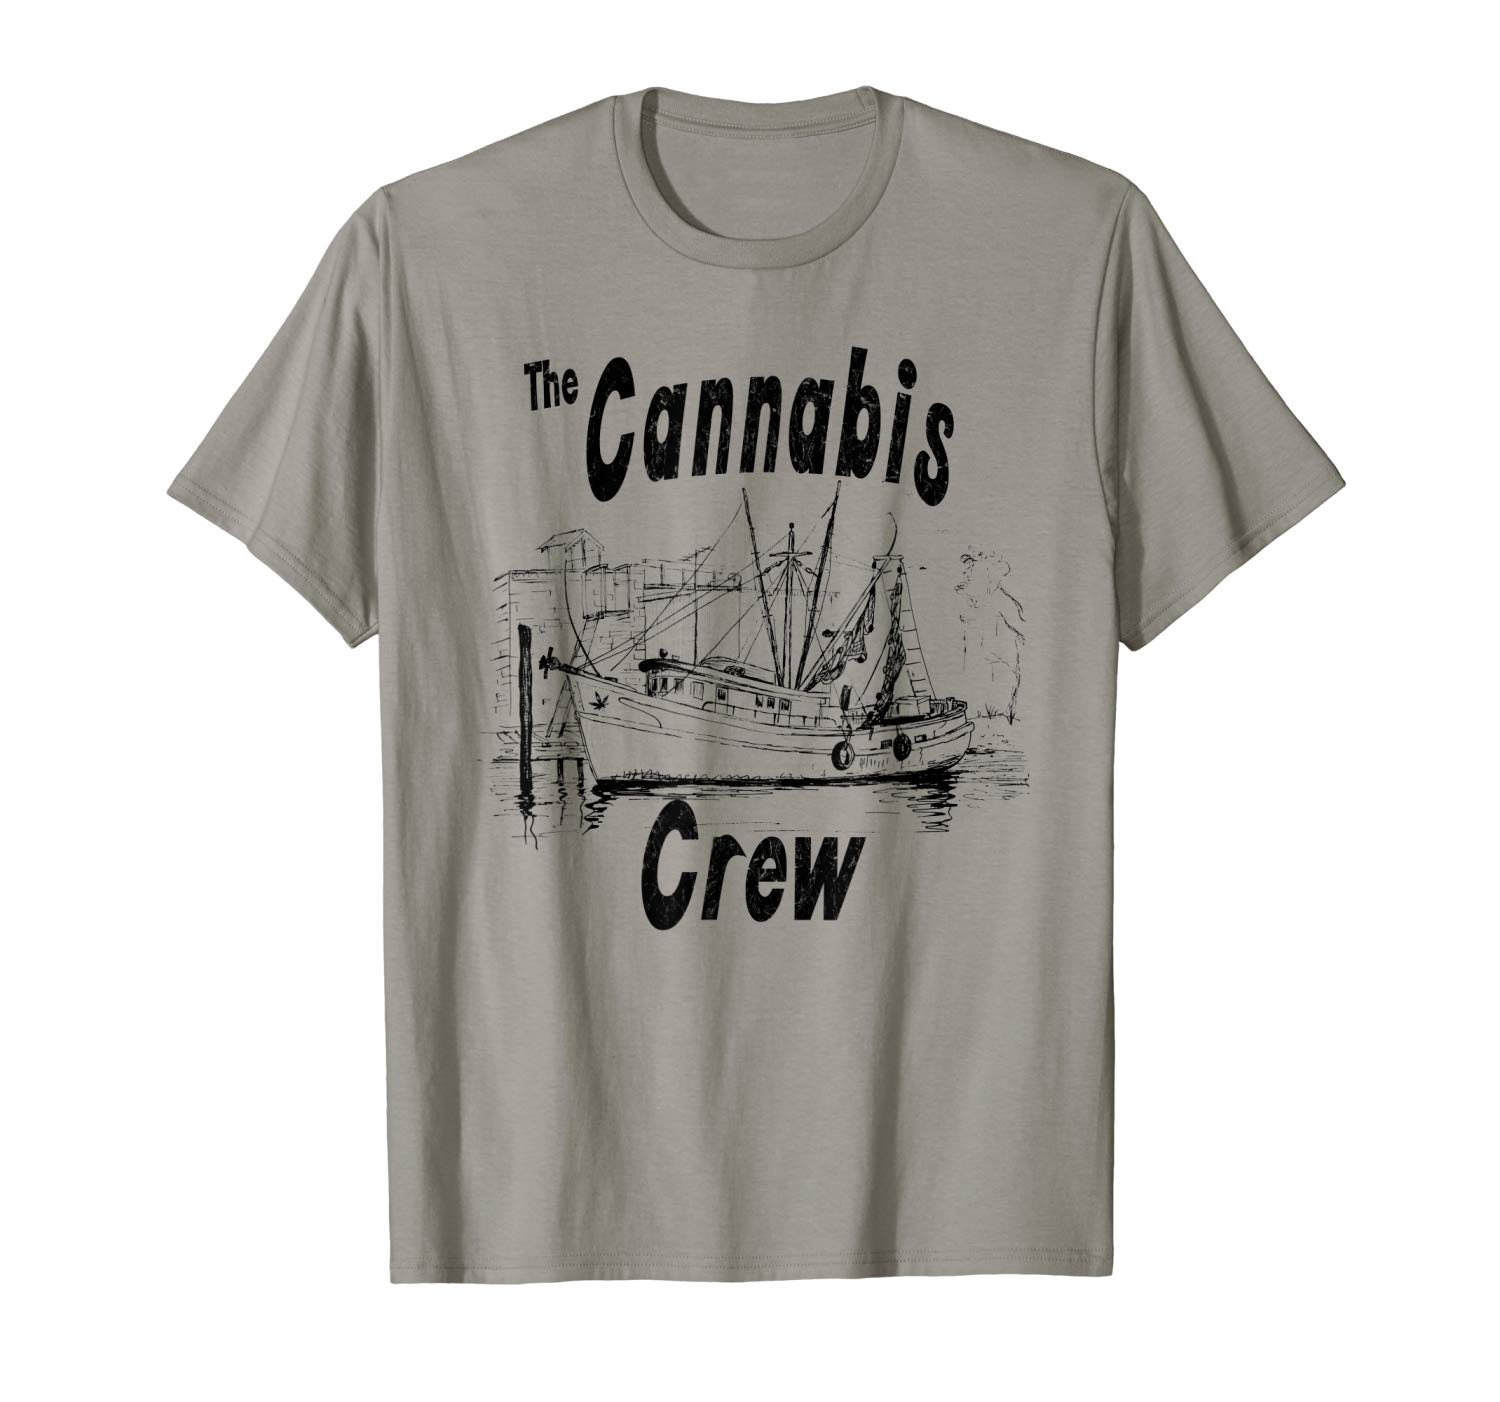 AN image of a slate colored Cannabis Crew T-shirt from Ganja Outpost.